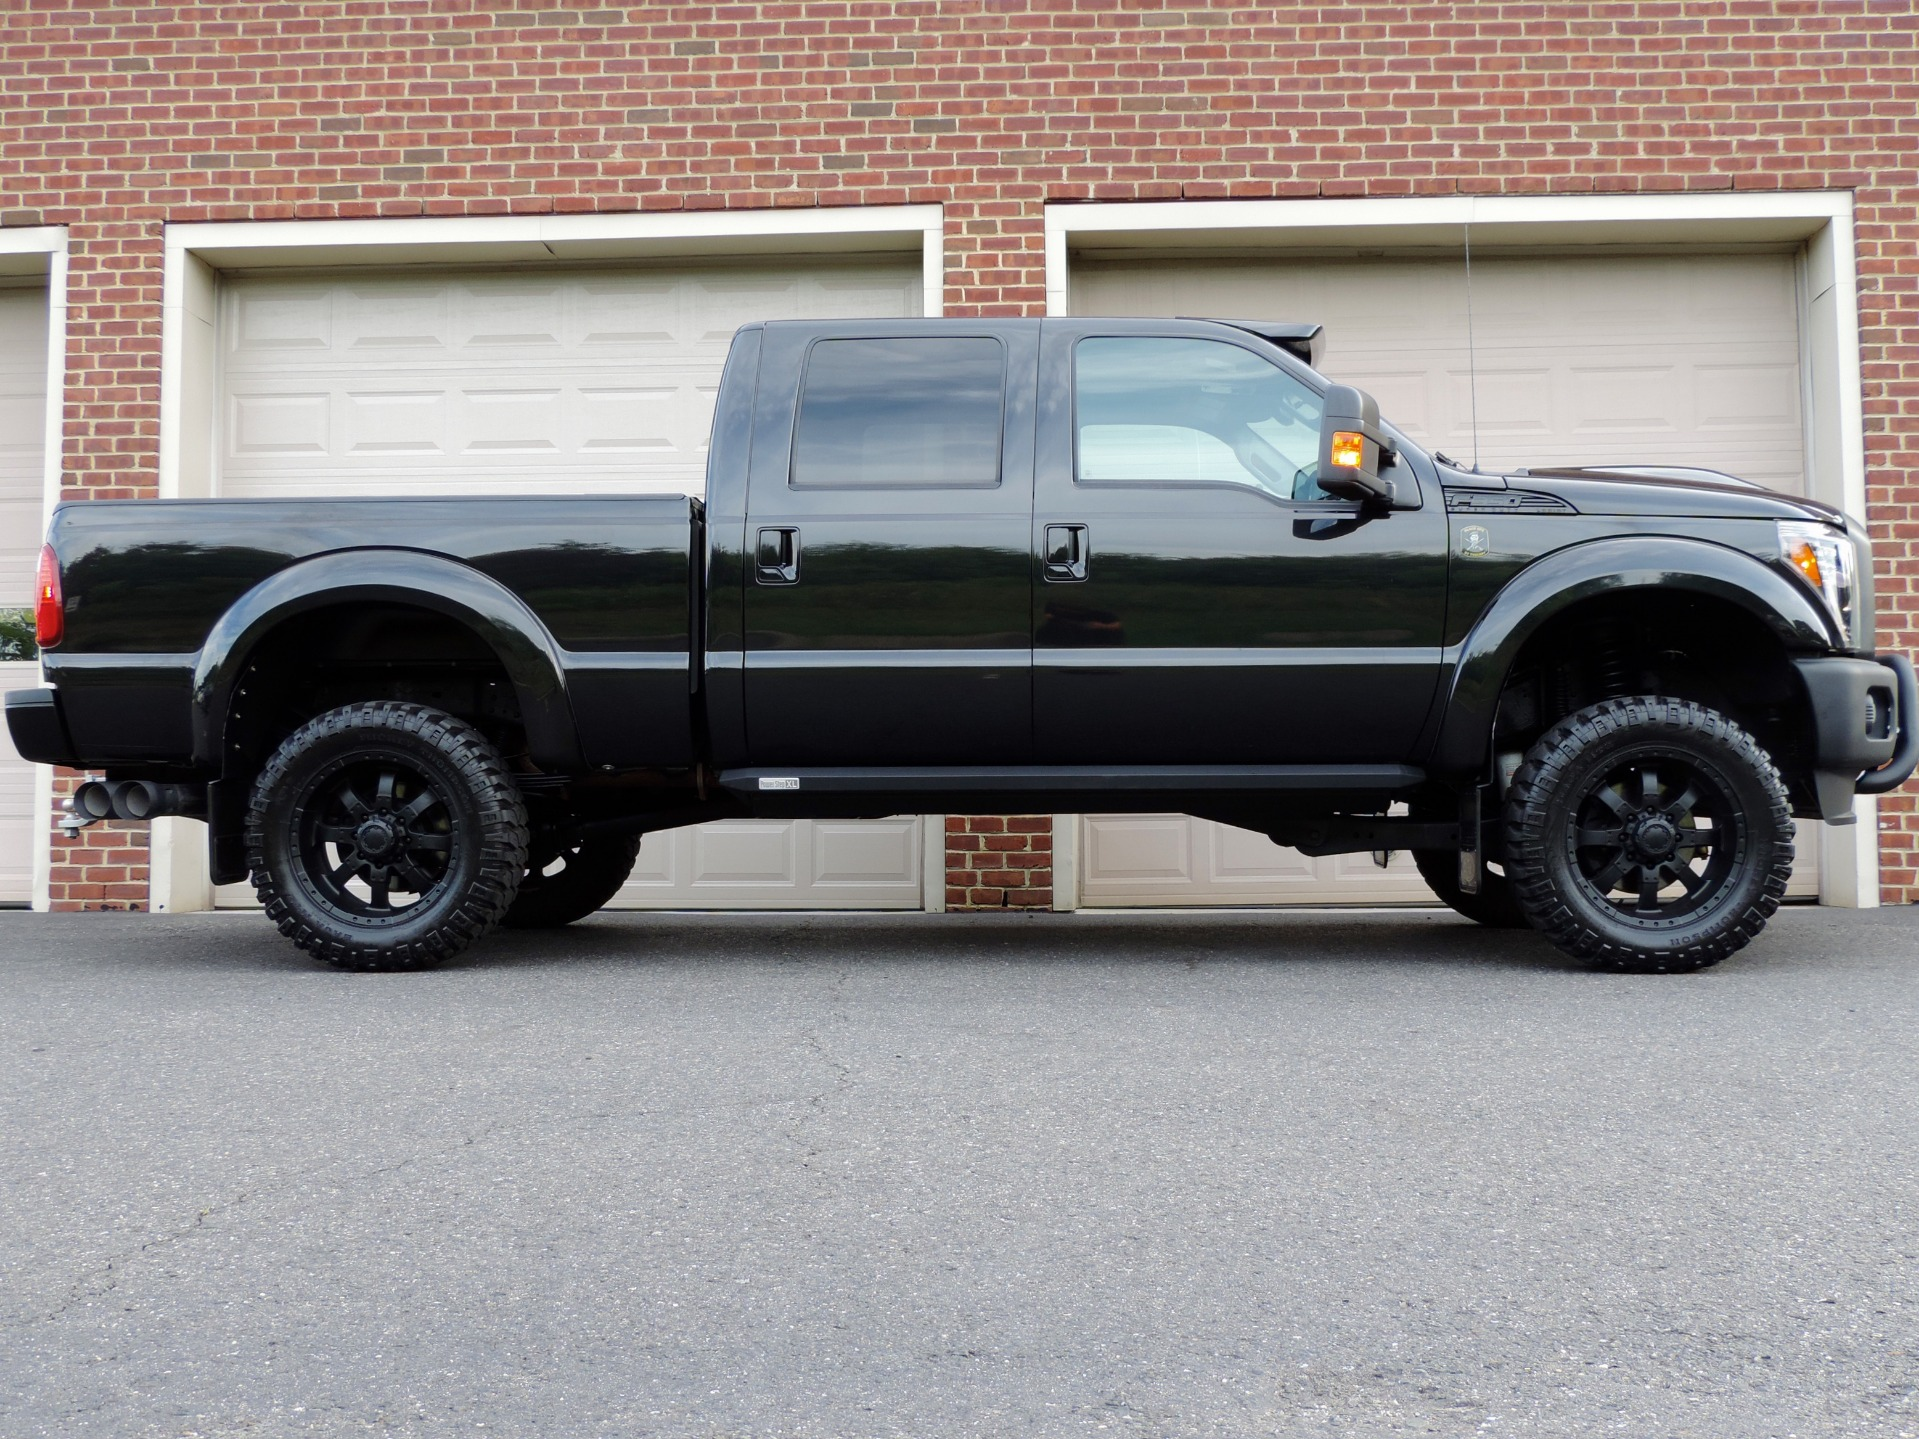 Ford Dealers In Nj >> 2015 Ford F-350 Super Duty Diesel Lariat Tuscany Black Ops ...